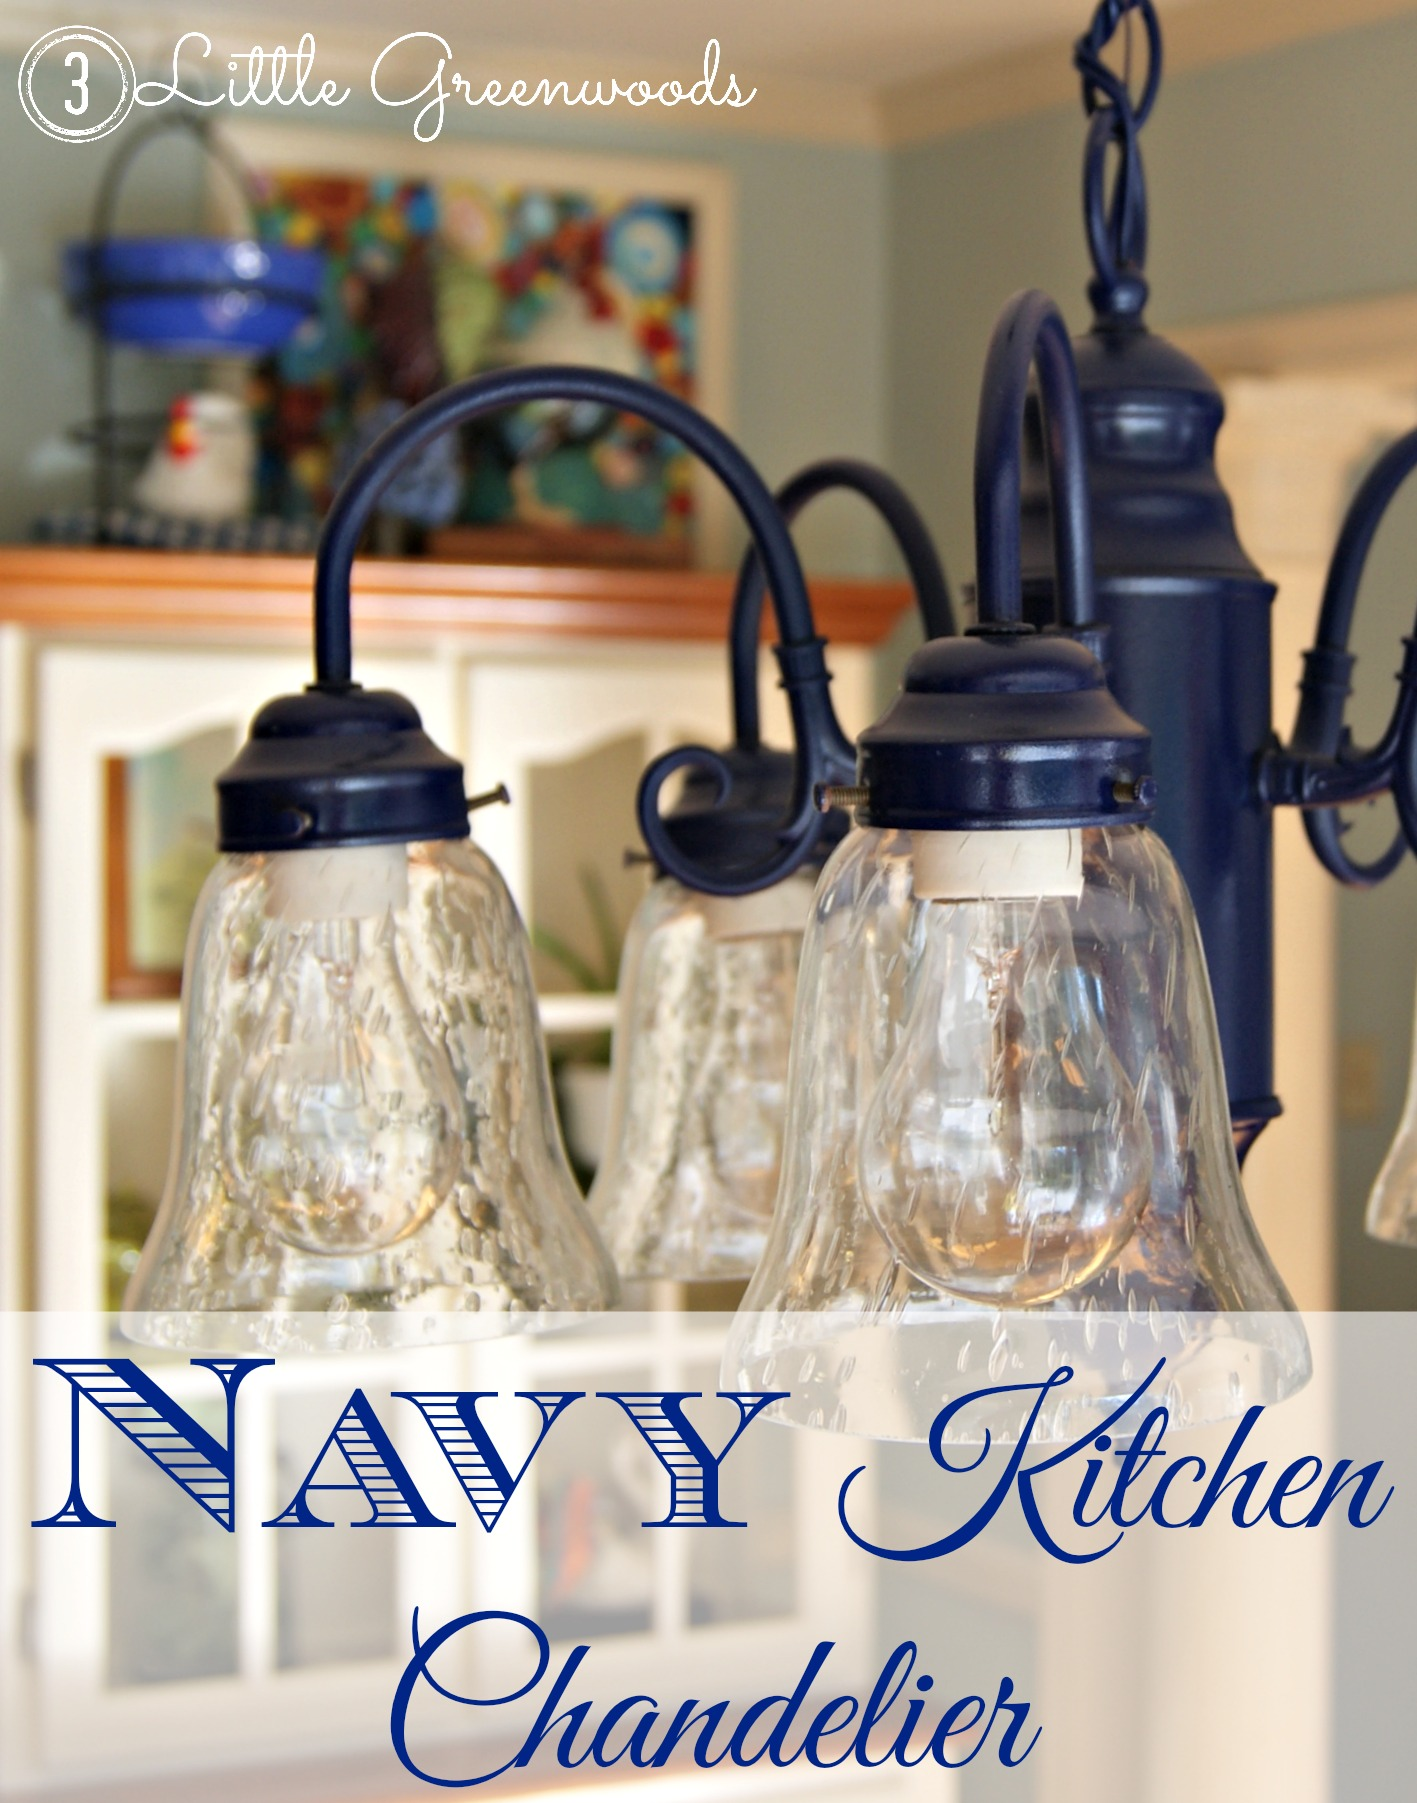 Spray painting a chandelier navy navy kitchen chandelier by 3 little greenwoods 3littlegreenwoods arubaitofo Choice Image